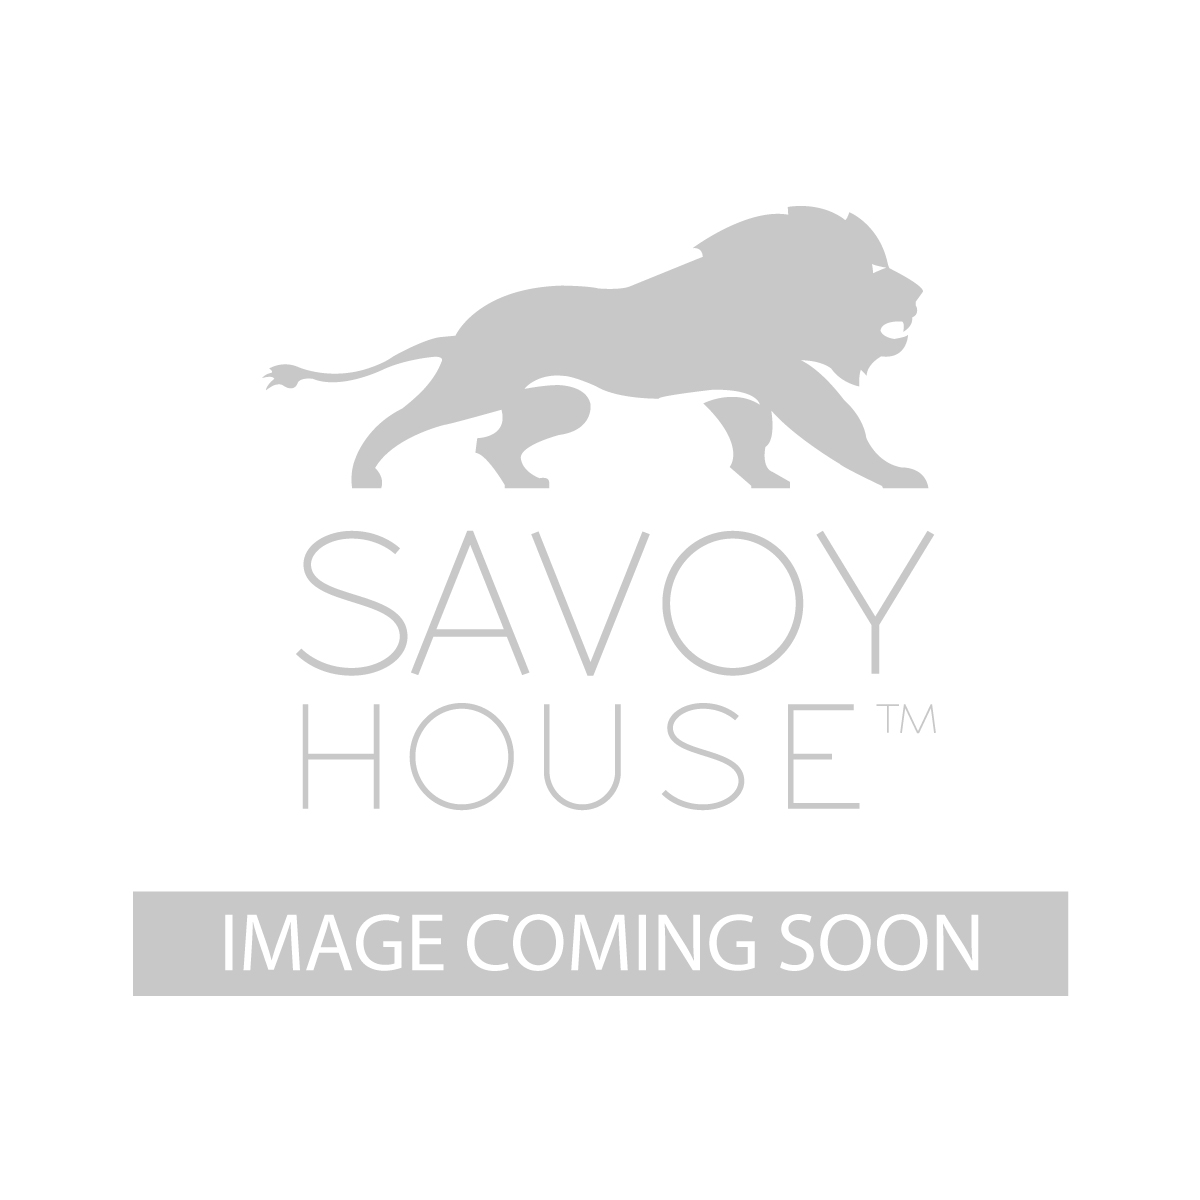 7 6099 24 109 galea 24 light chandelier by savoy house arubaitofo Image collections